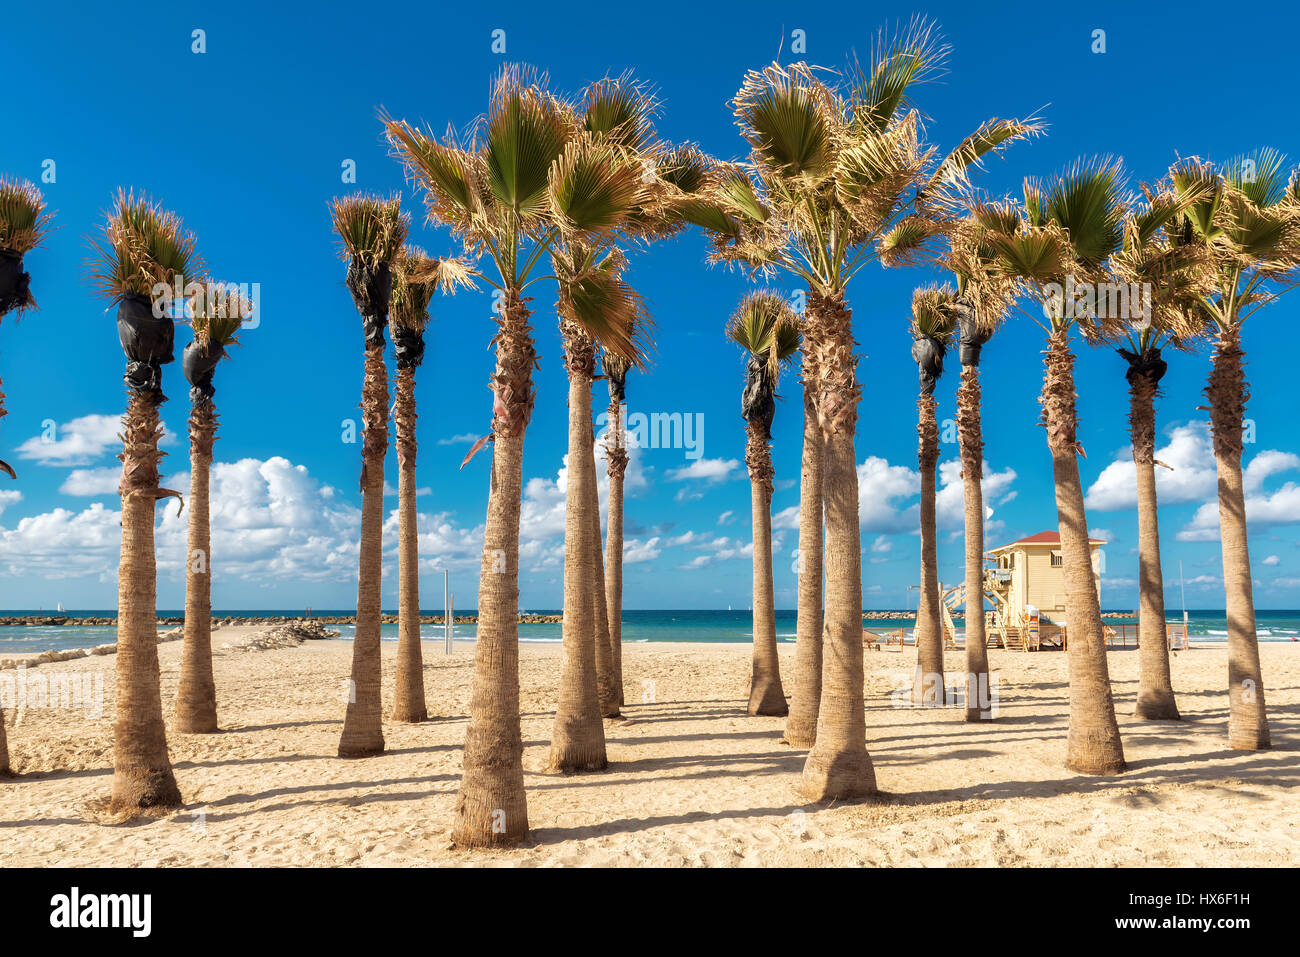 Palm trees on Tel Aviv sand beach, Israel. - Stock Image